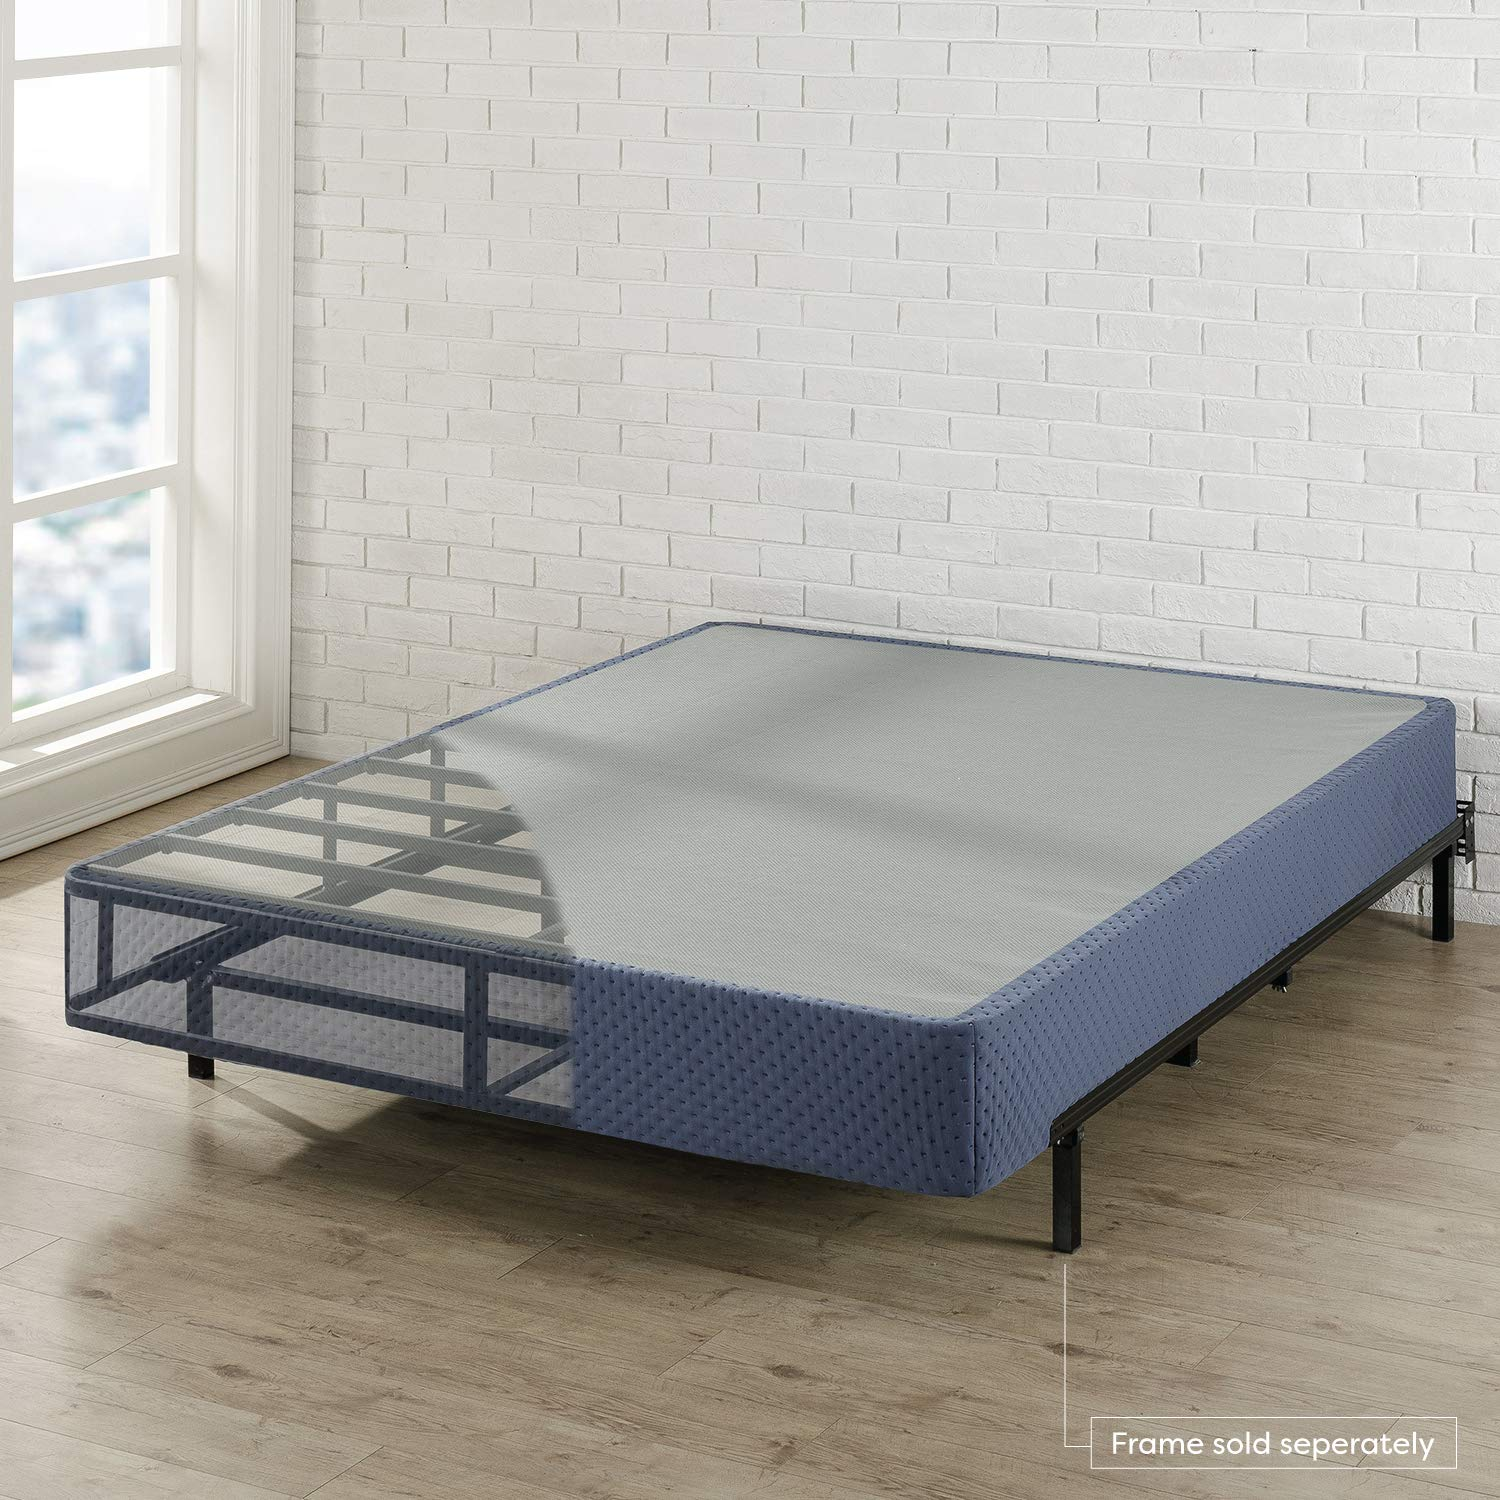 Best Price Mattress King Box Spring 9'' High Profile with with Heavy Duty Steel Slat Mattress Foundation Fits Standard Bed Frame, Navy